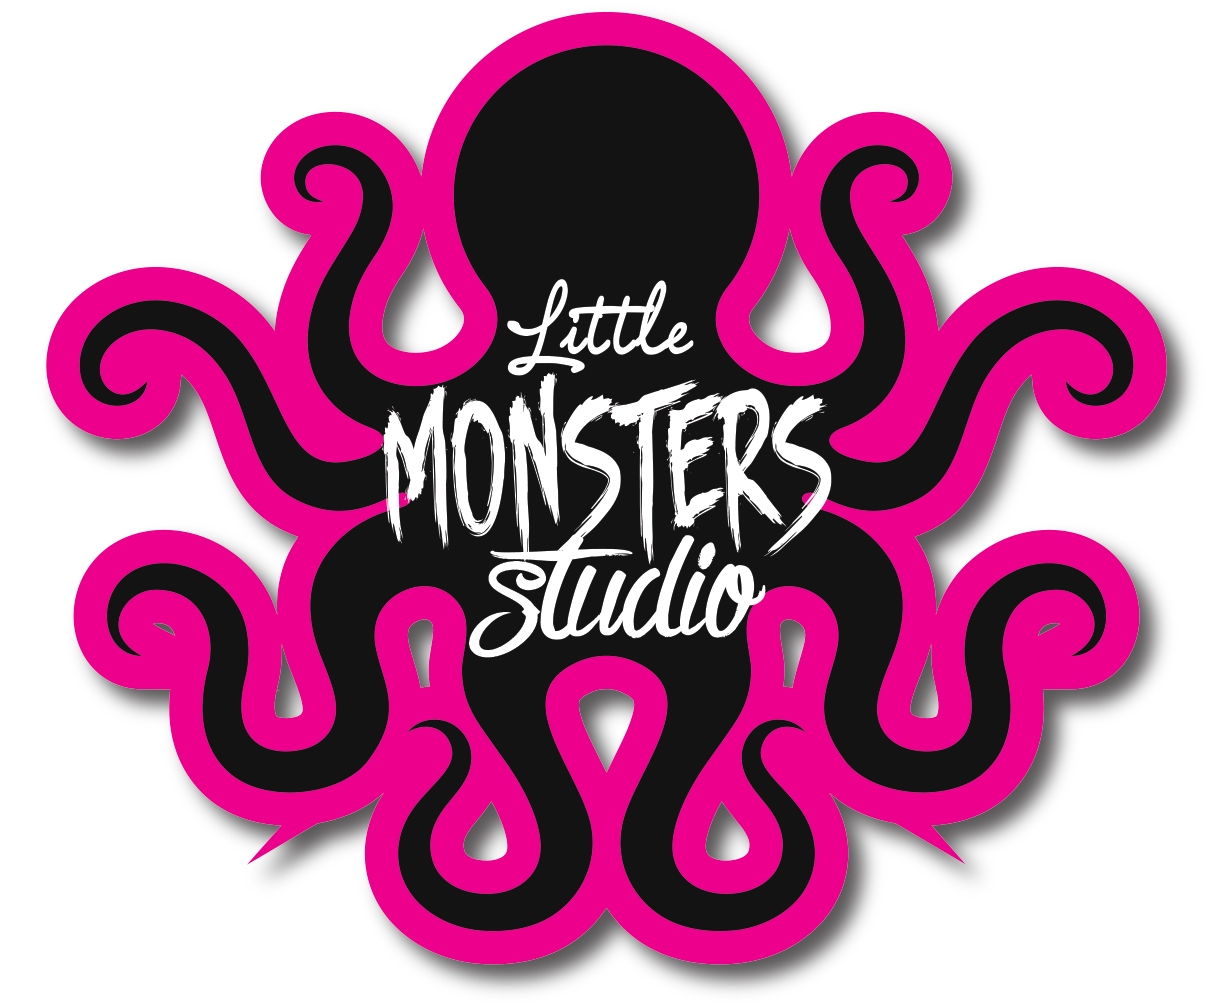 Little Monsters Studio